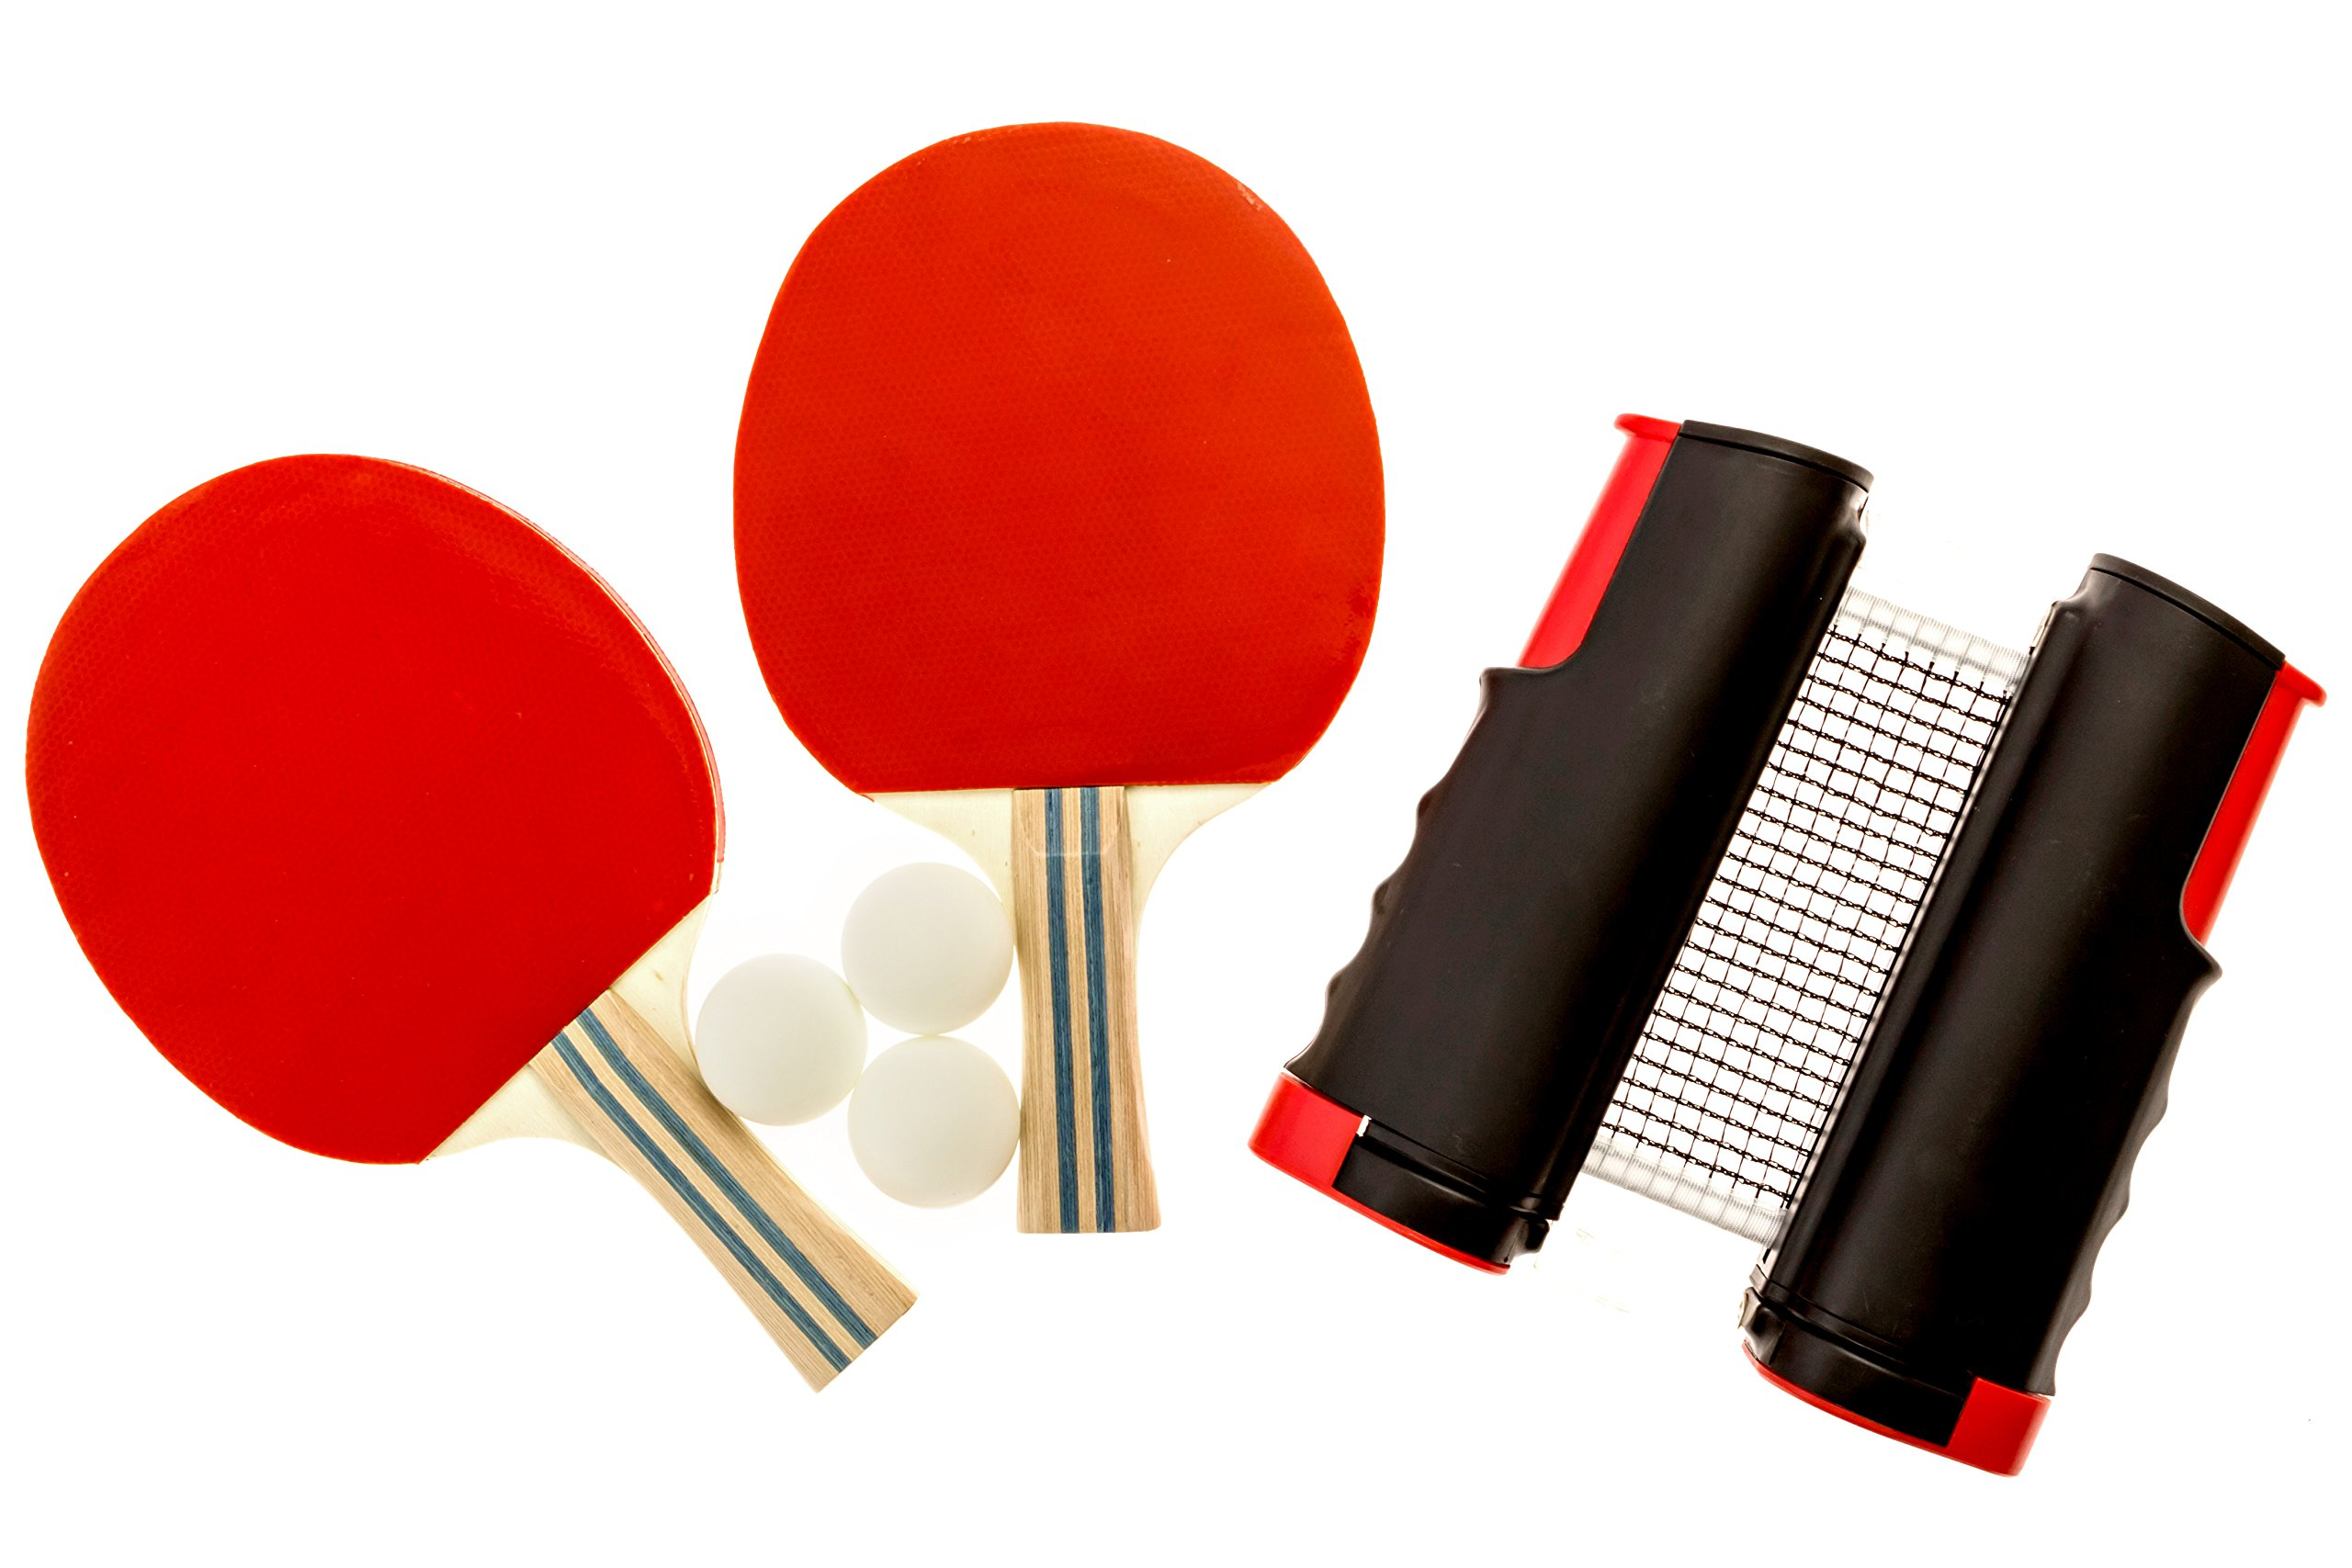 a comparison of the sports ping pong and tennis Find the best ping pong table your budget allows  ping pong tables can be inexpensive in comparison to other game  eastpoint sports dominator table tennis.